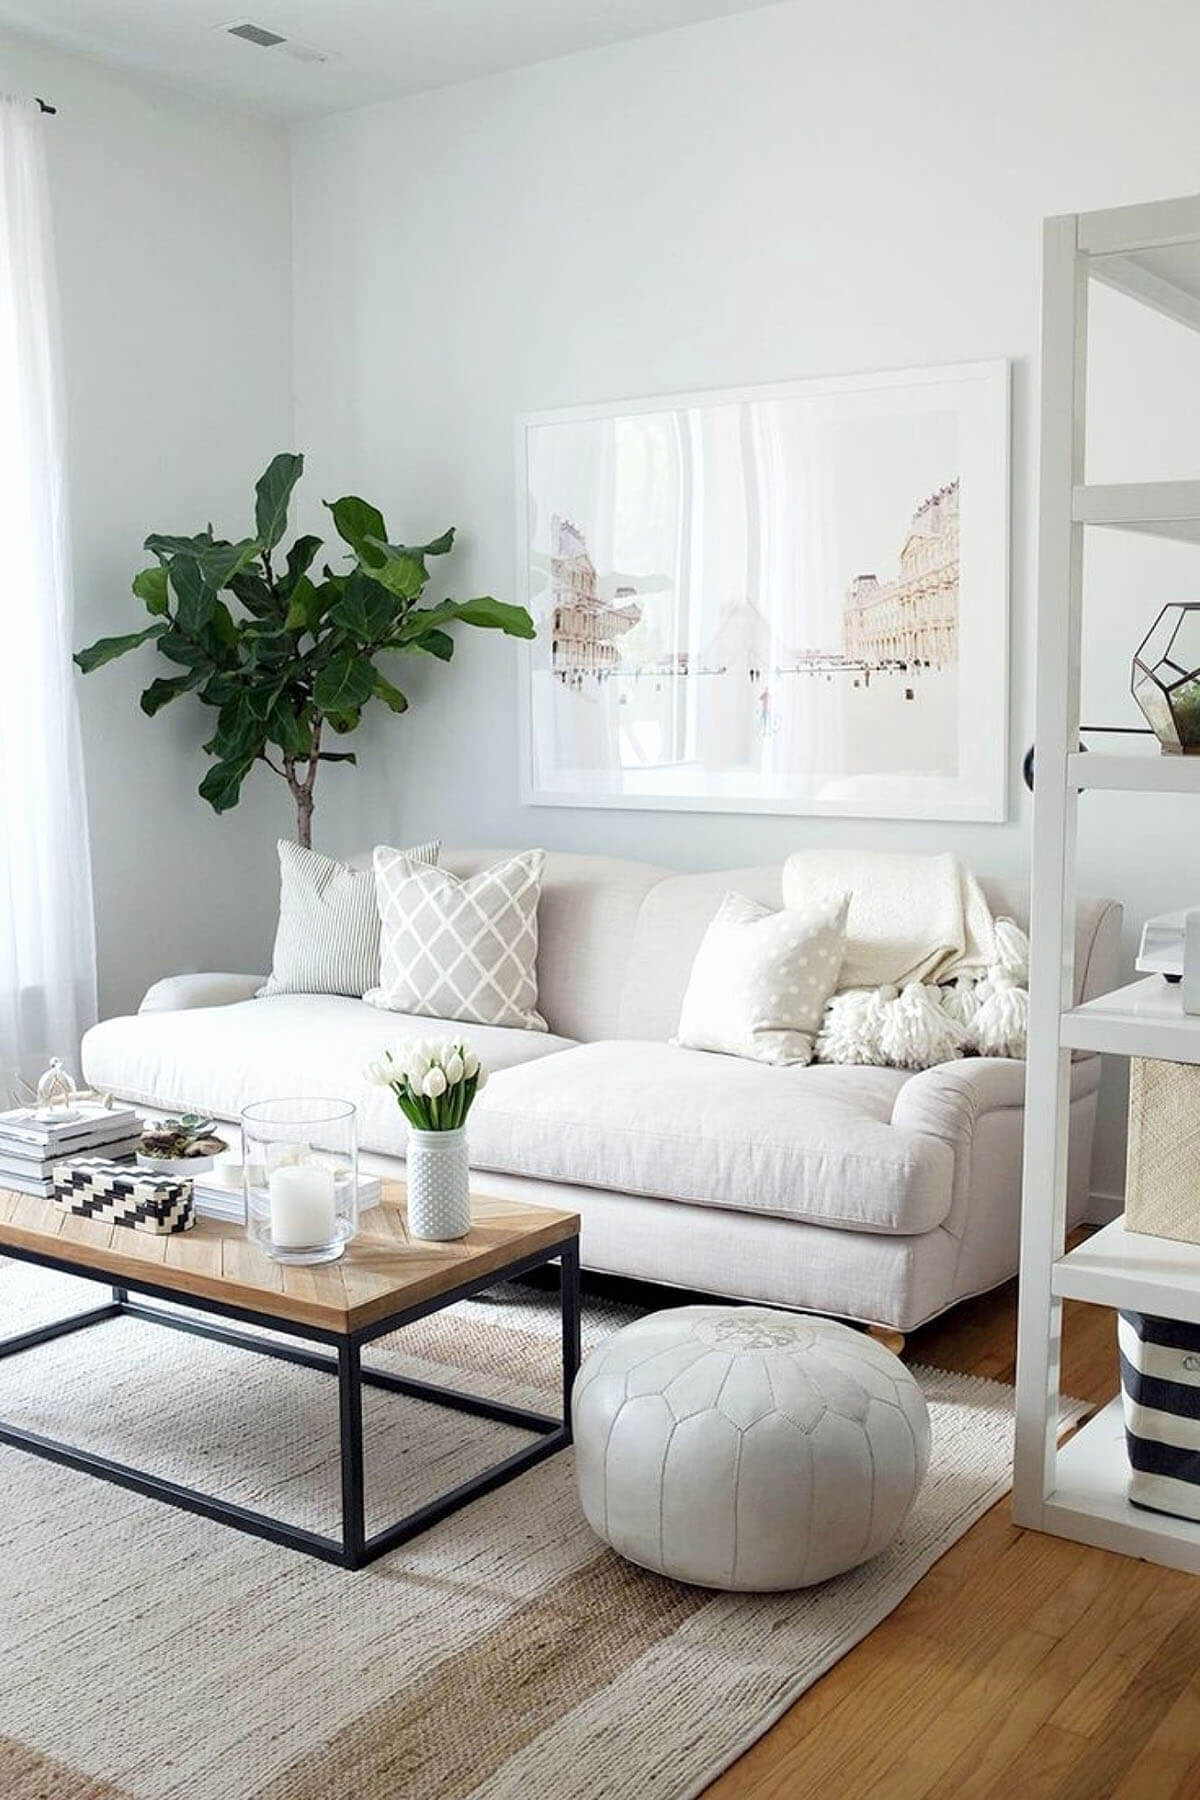 small living room decor Serene Small Living Room Decor Idea — Homebnc small living room decor